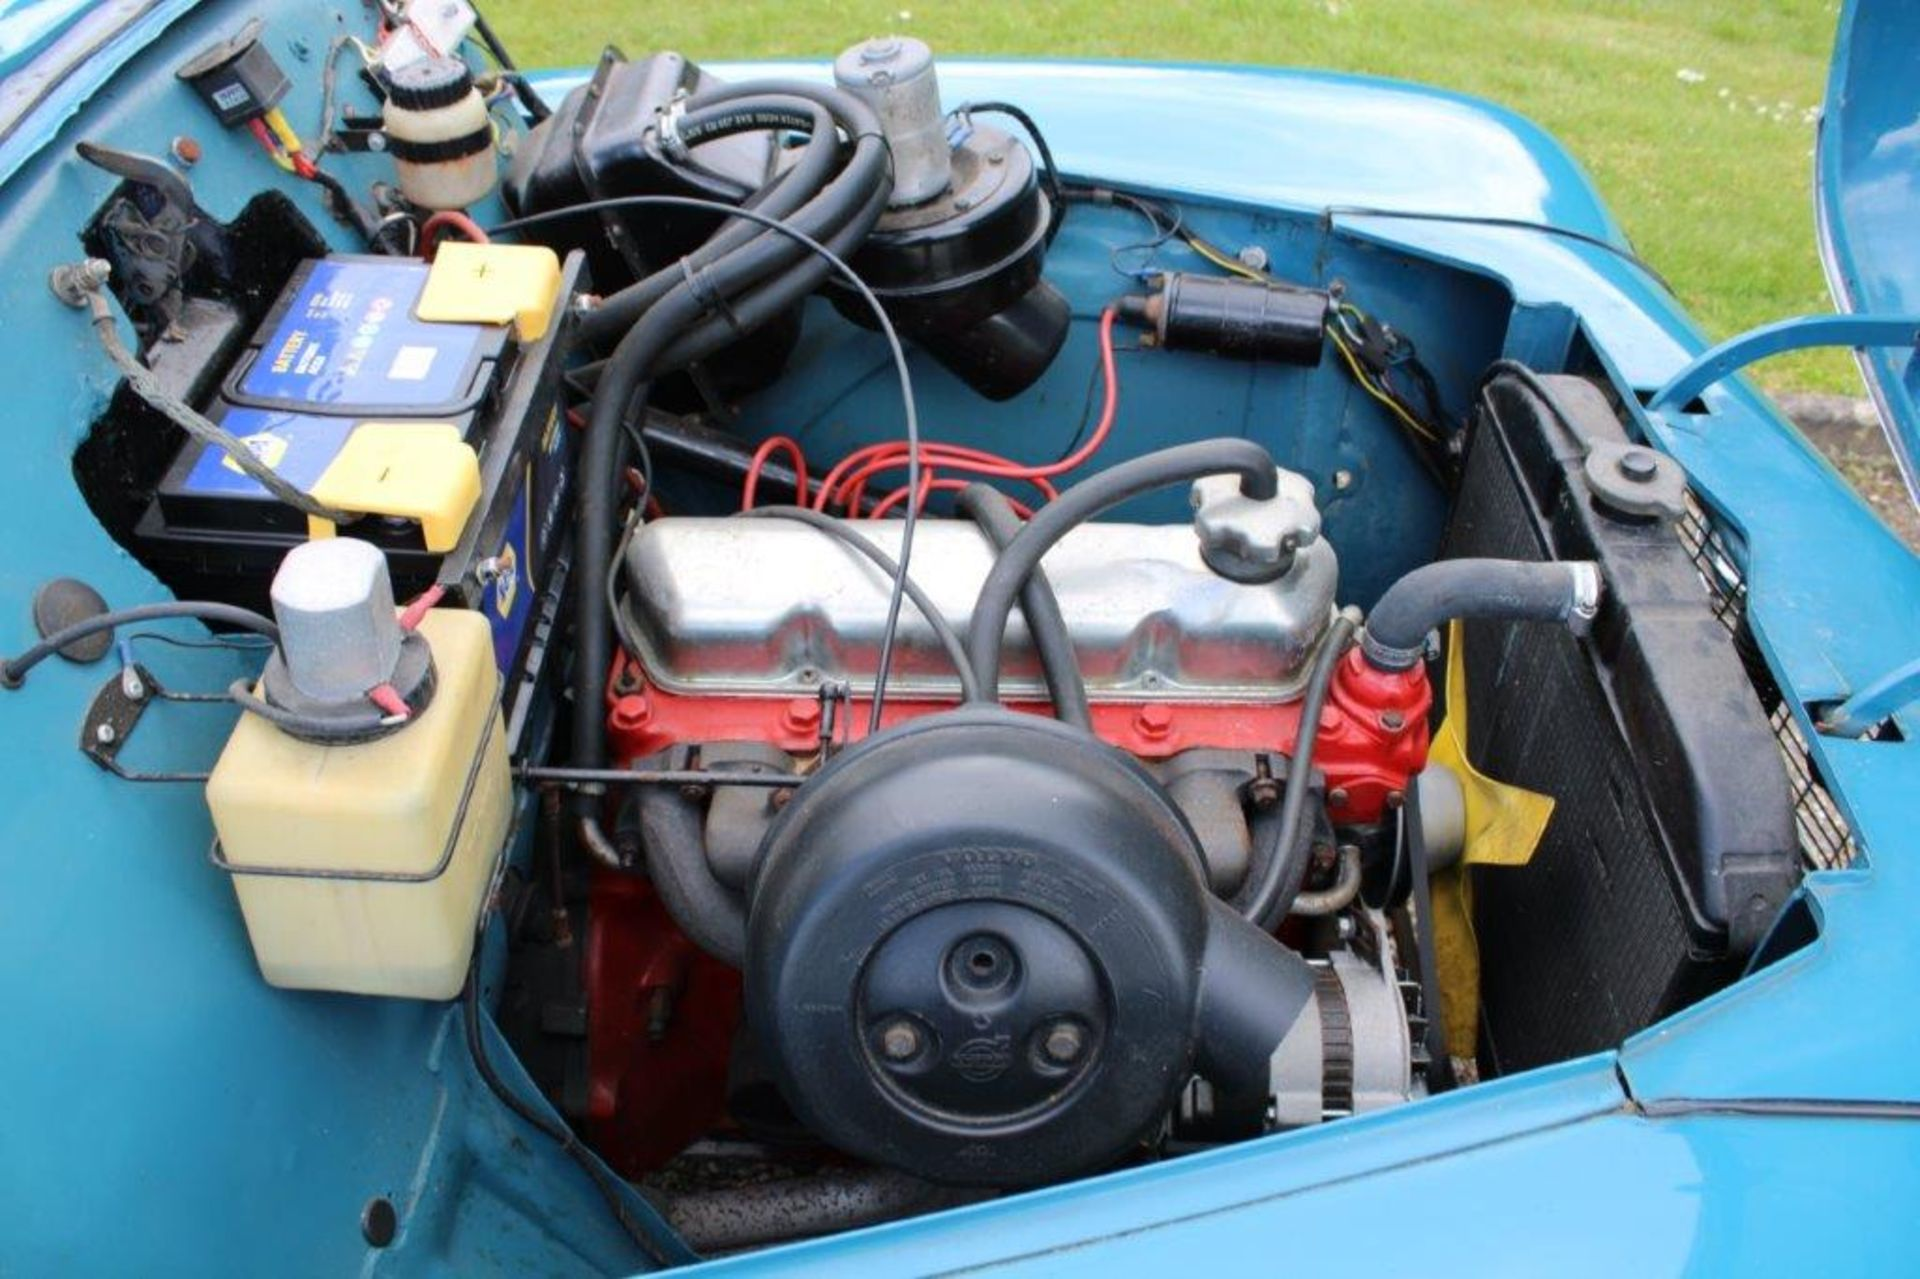 1961 Volvo P 21114 A Pick-Up LHD - Image 18 of 25